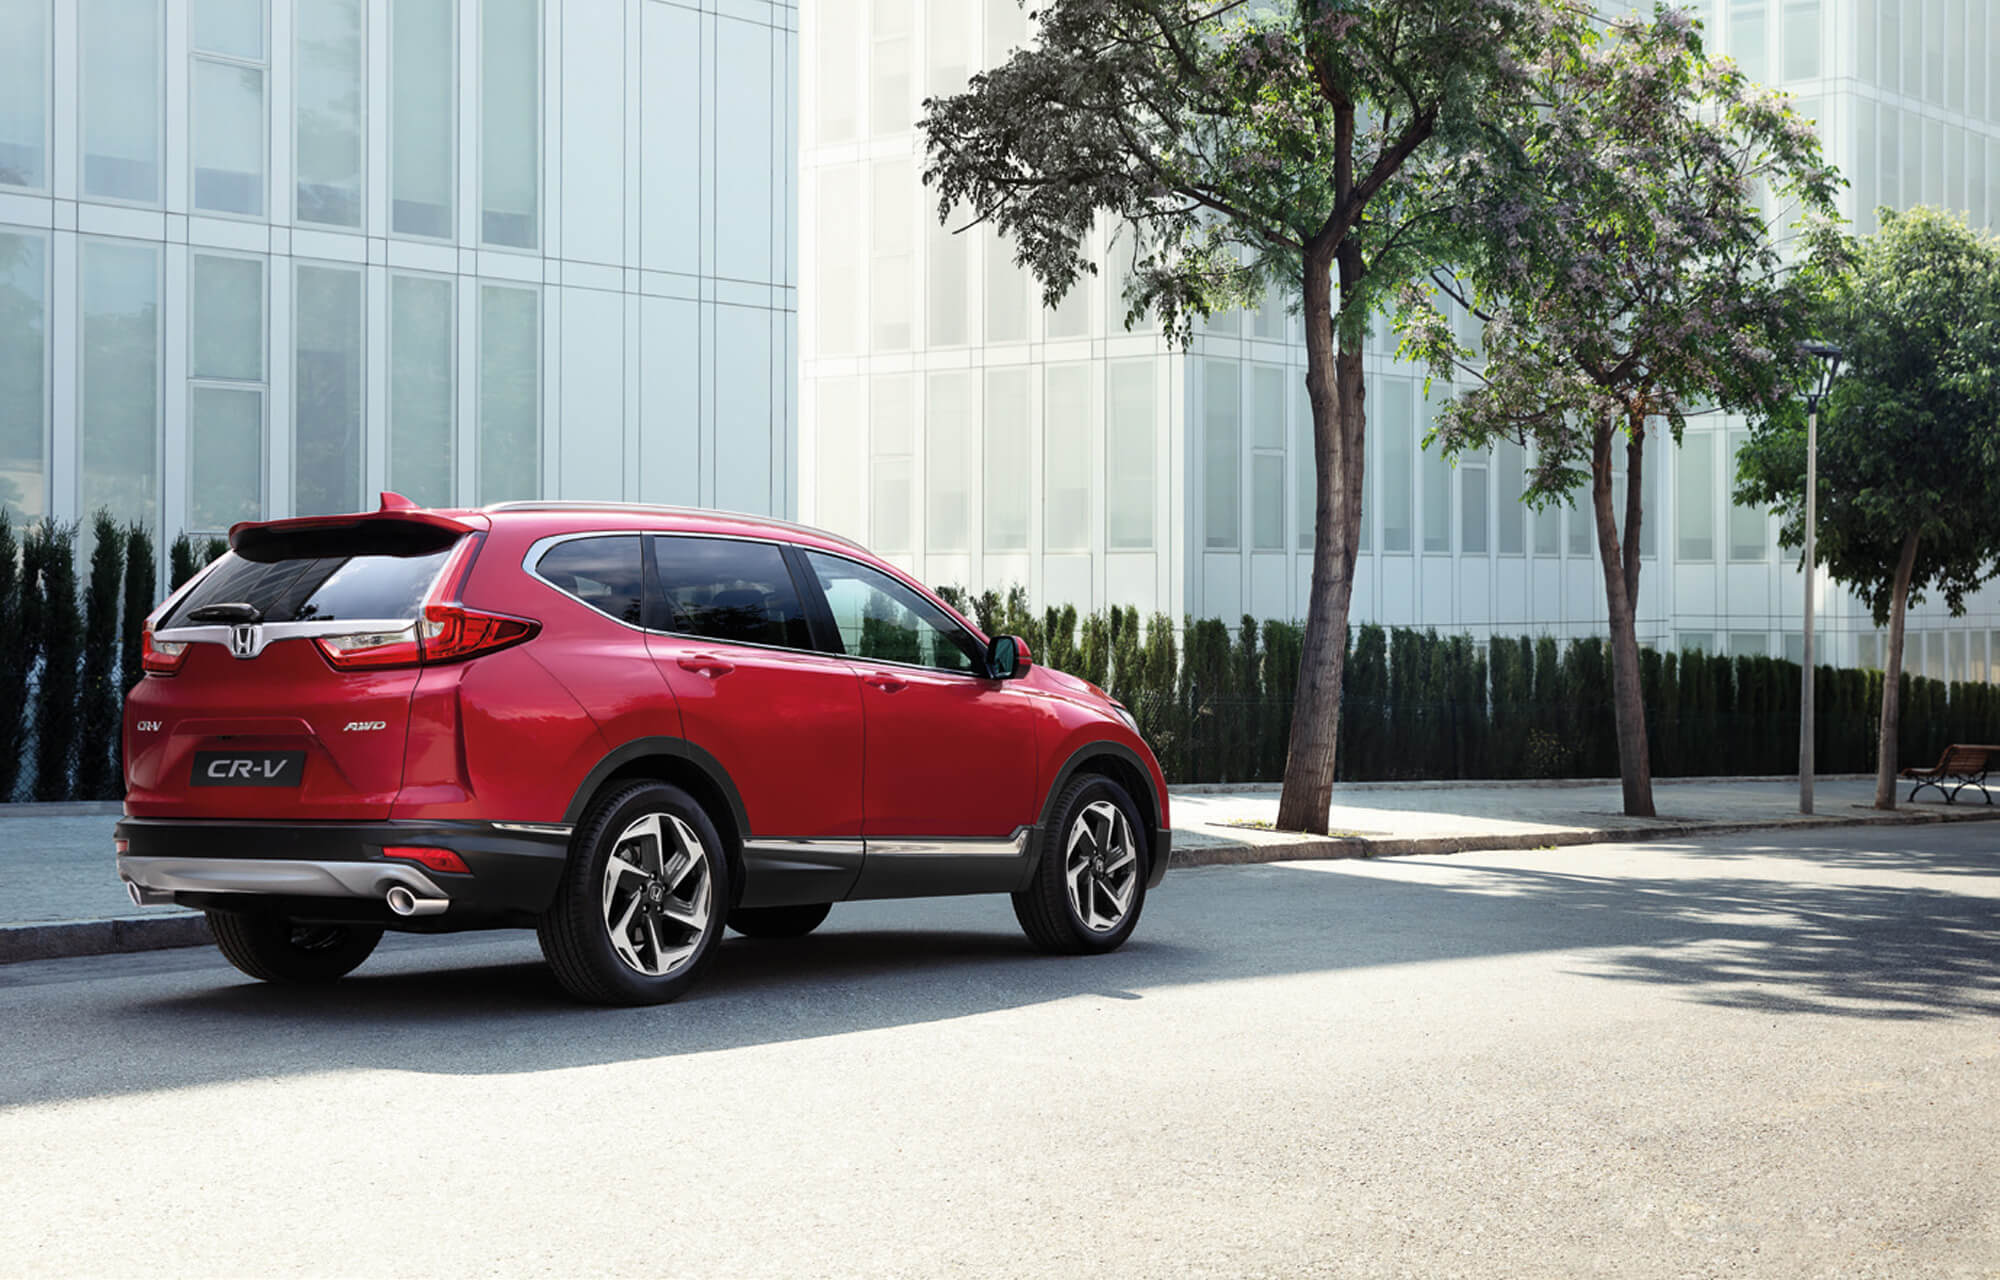 Honda CR-V Accessories